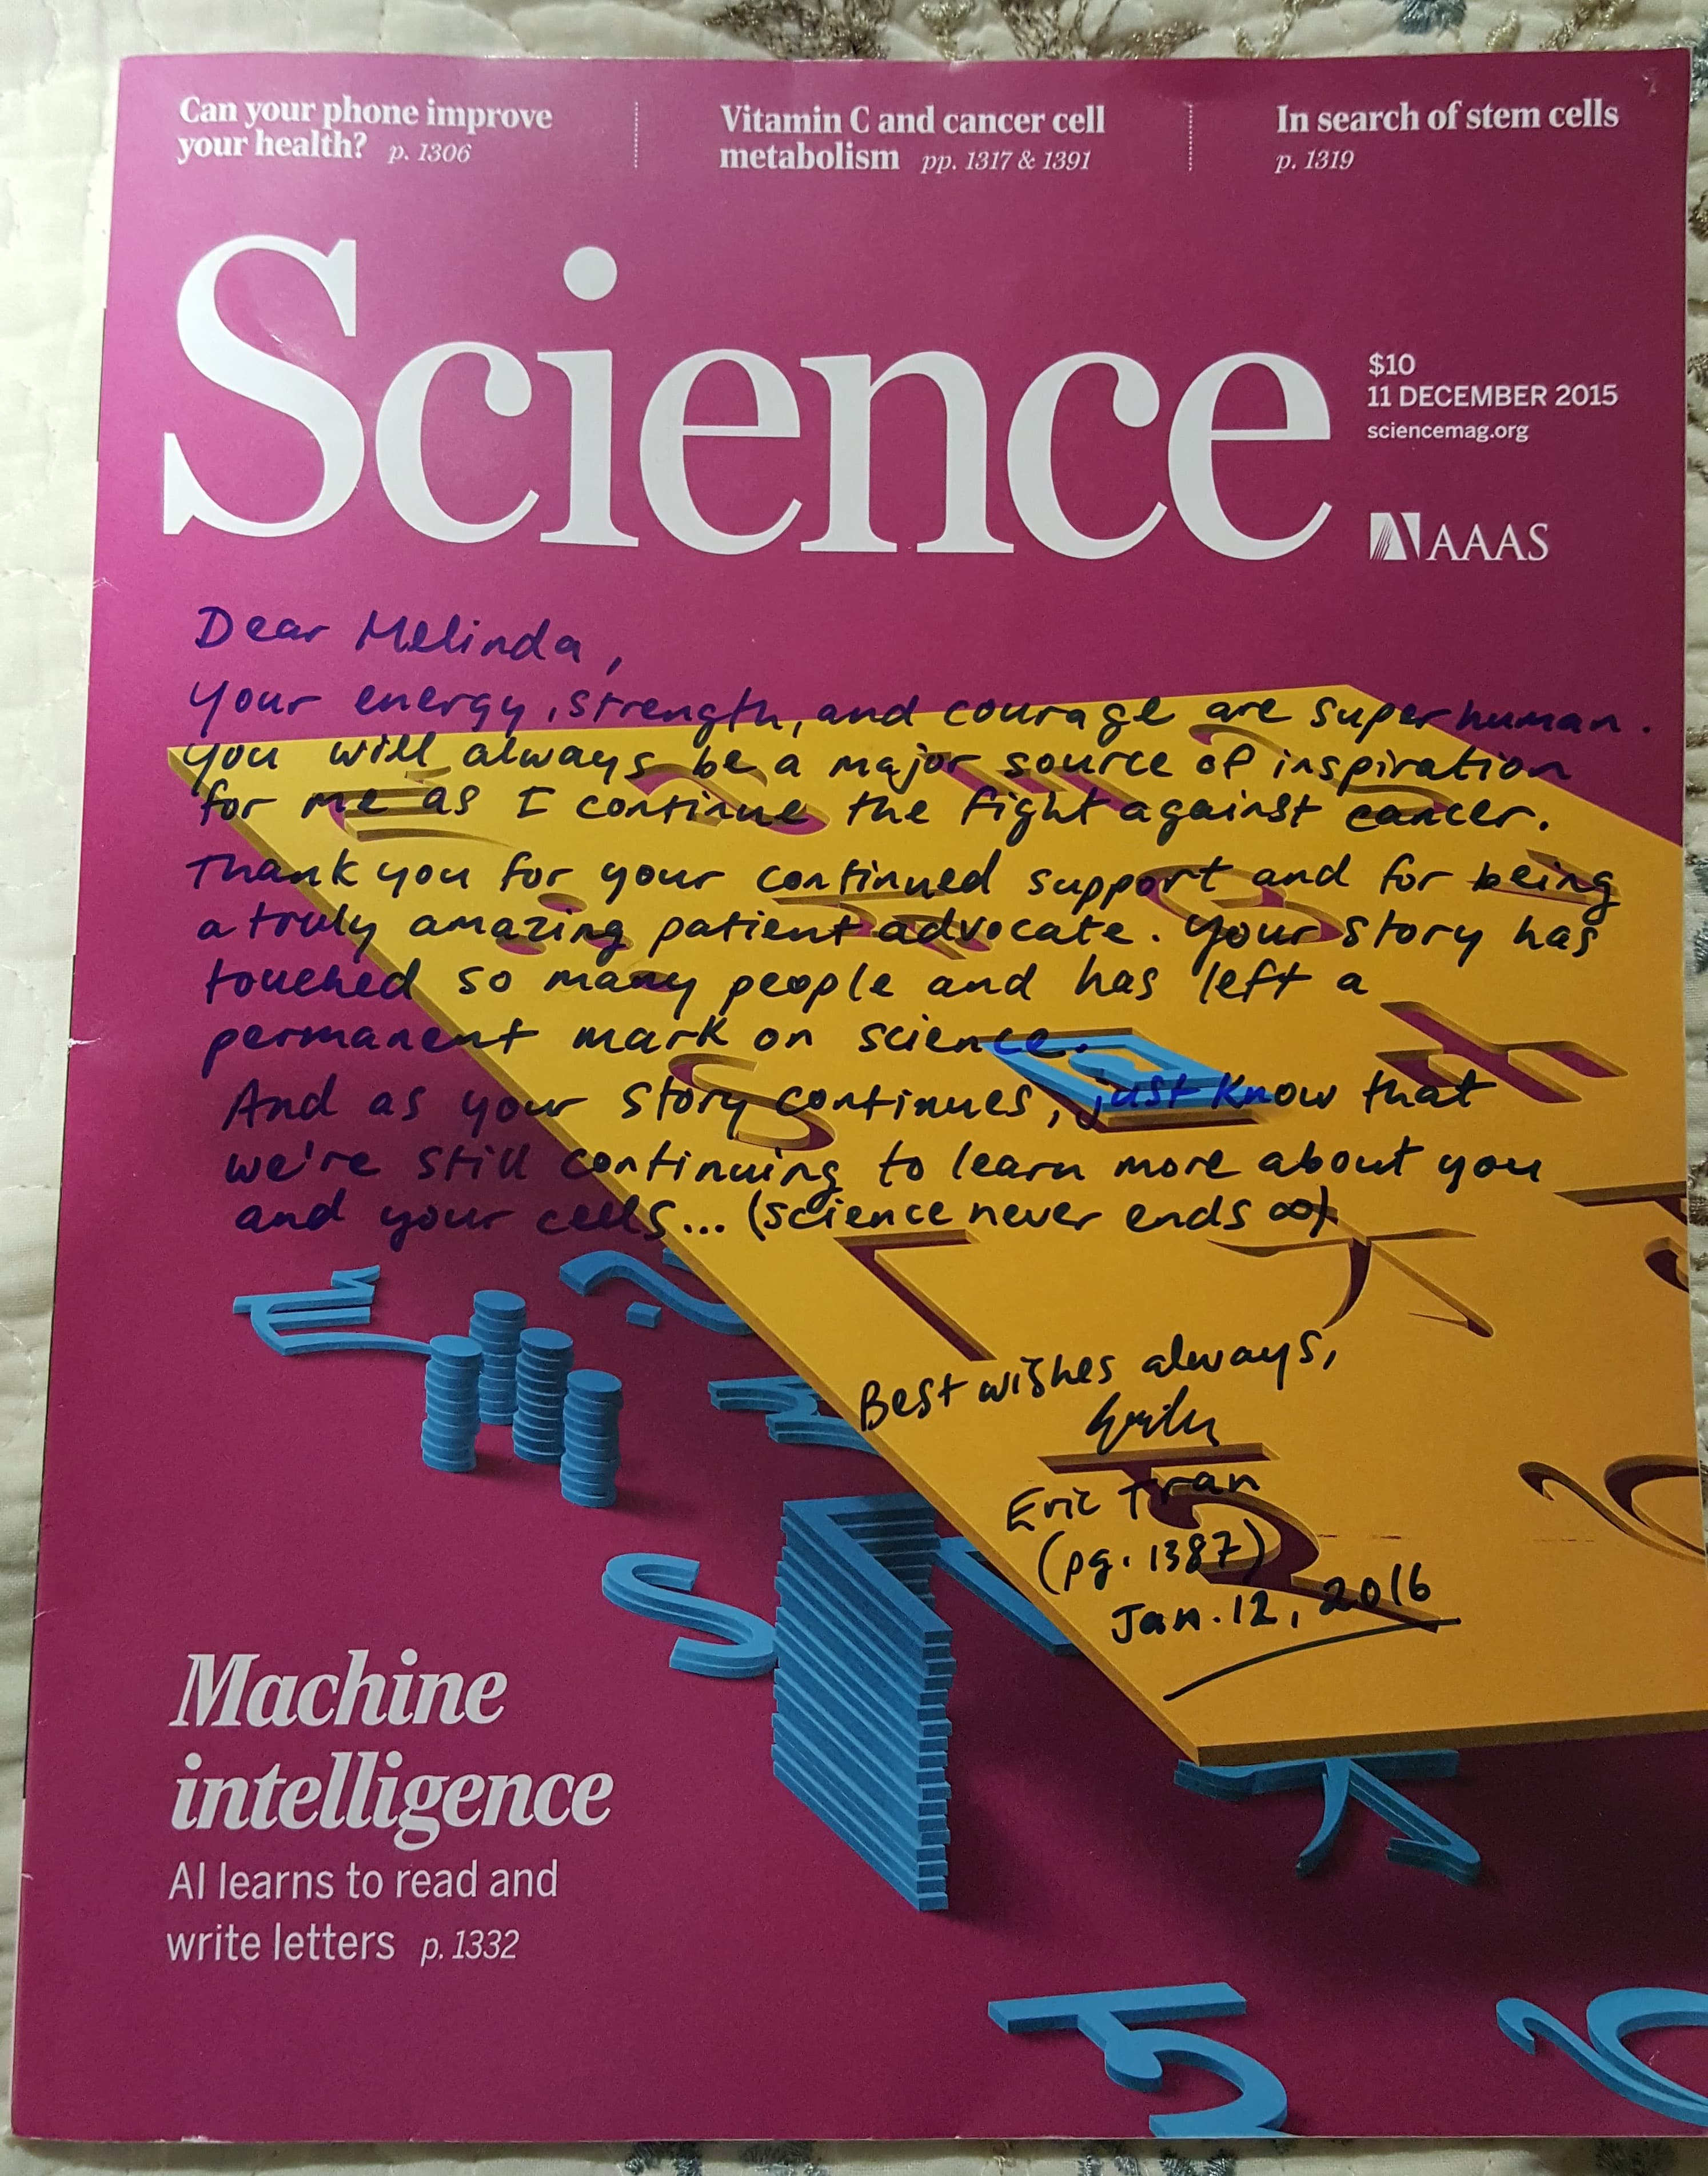 Message written by Dr Tran on the pink cover of a Science magazine